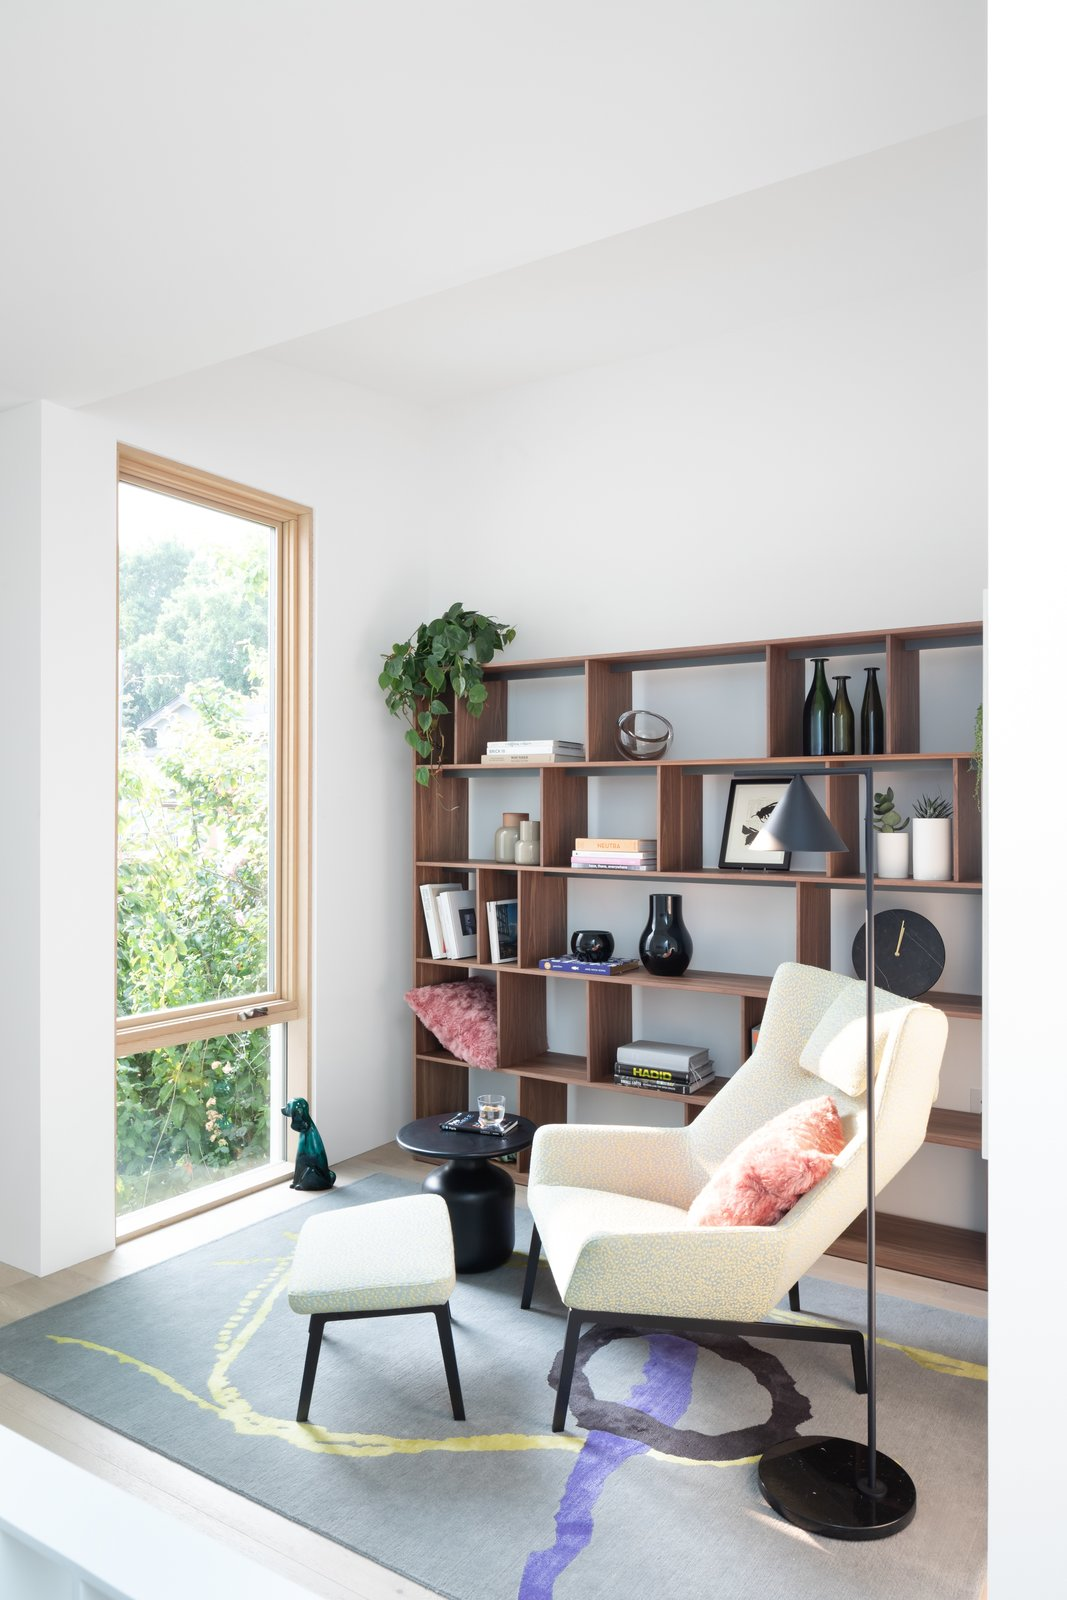 Living Room, Ottomans, Shelves, Chair, End Tables, Floor Lighting, and Rug Floor A Bensen chair and shelves, along with a Diurne carpet from Salari, sit in the den.    Photos from 11 Skylights Brighten a Compact, Narrow Home in Vancouver